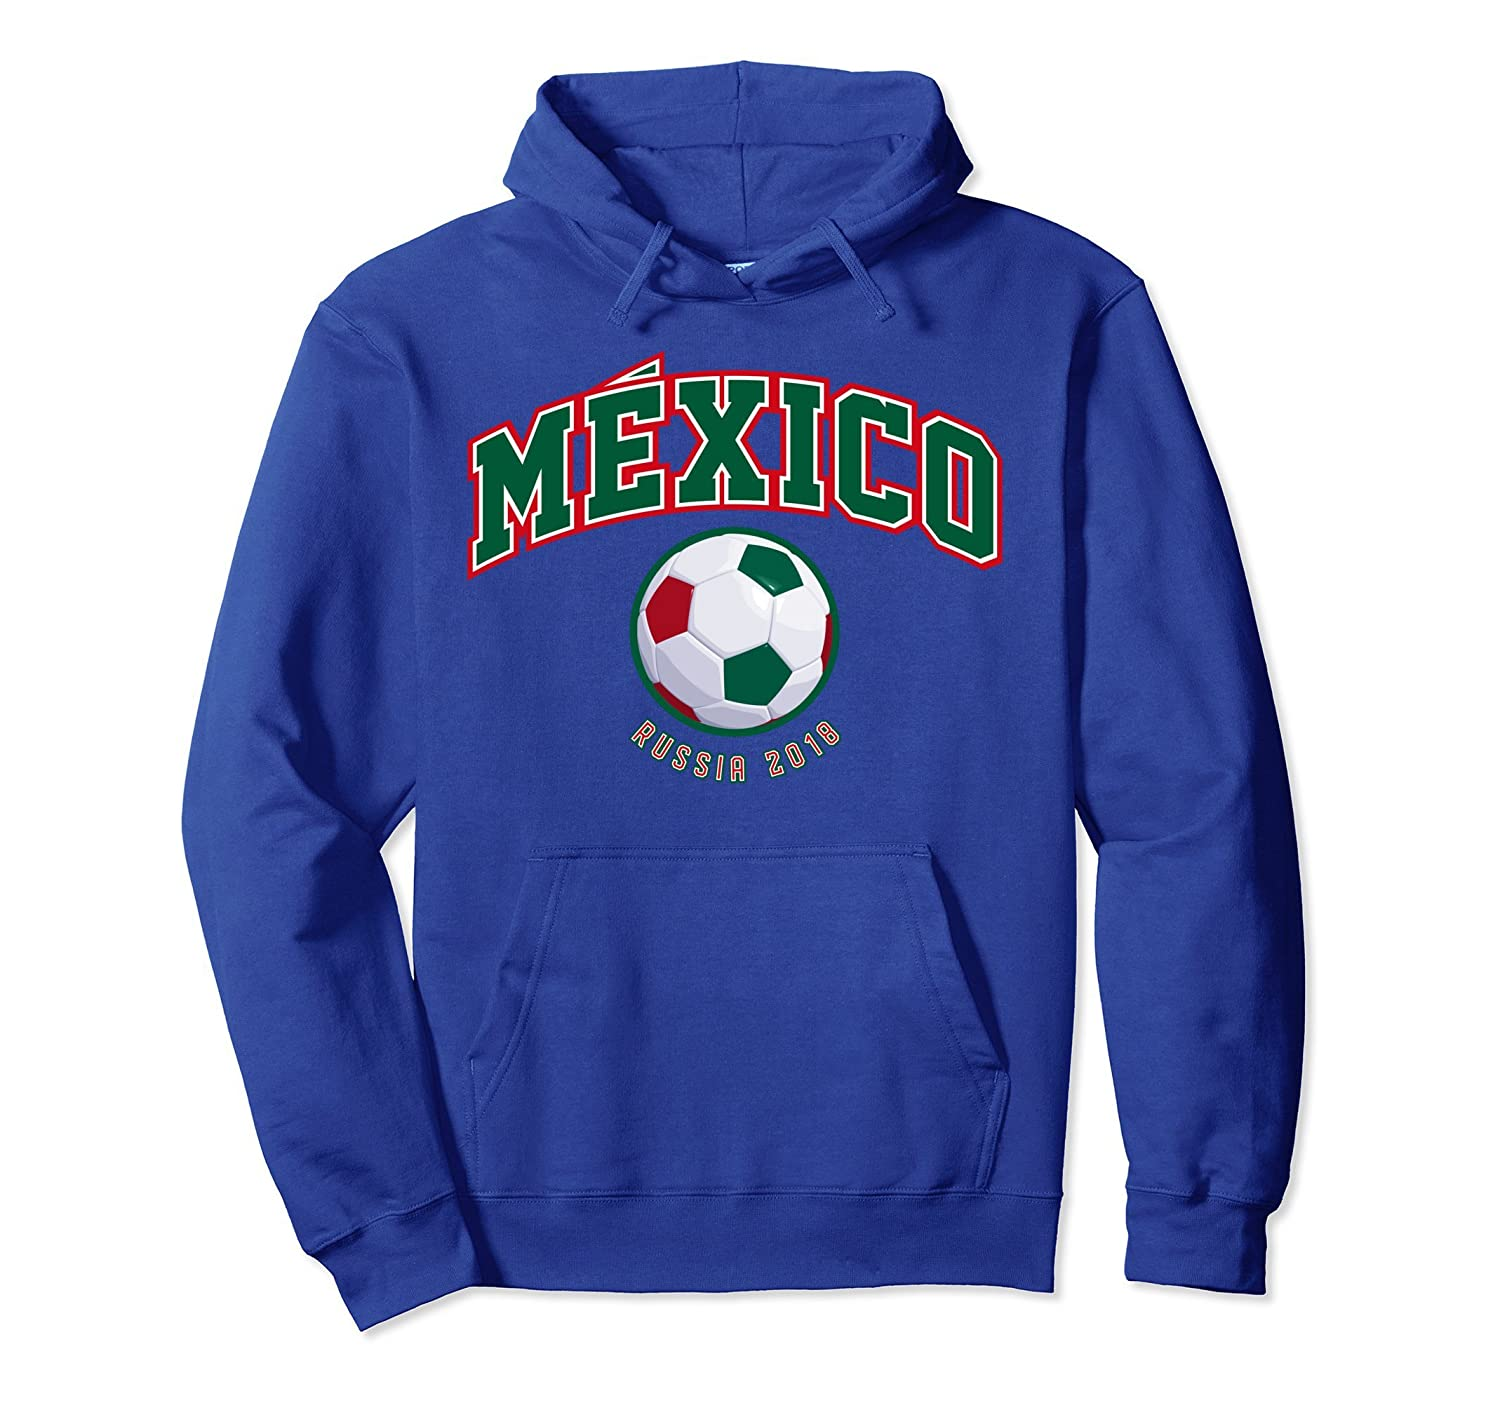 Mexico Soccer Hoodie 2018 Russia World Futbol Team Cup-alottee gift